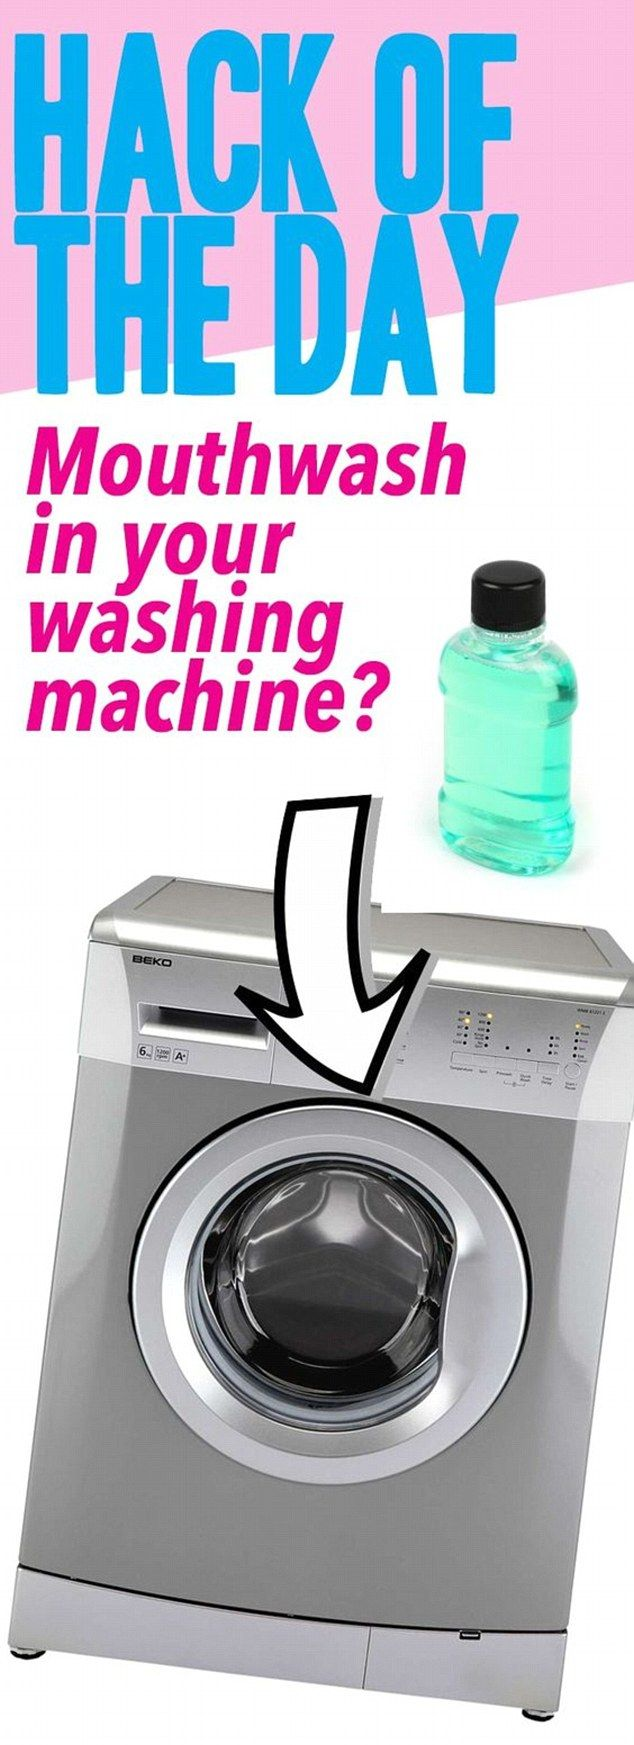 American Overlook says if your washing machine is dirty, pour half a cup of mouthwash into the empty machine and run it to help disinfect and clean it out